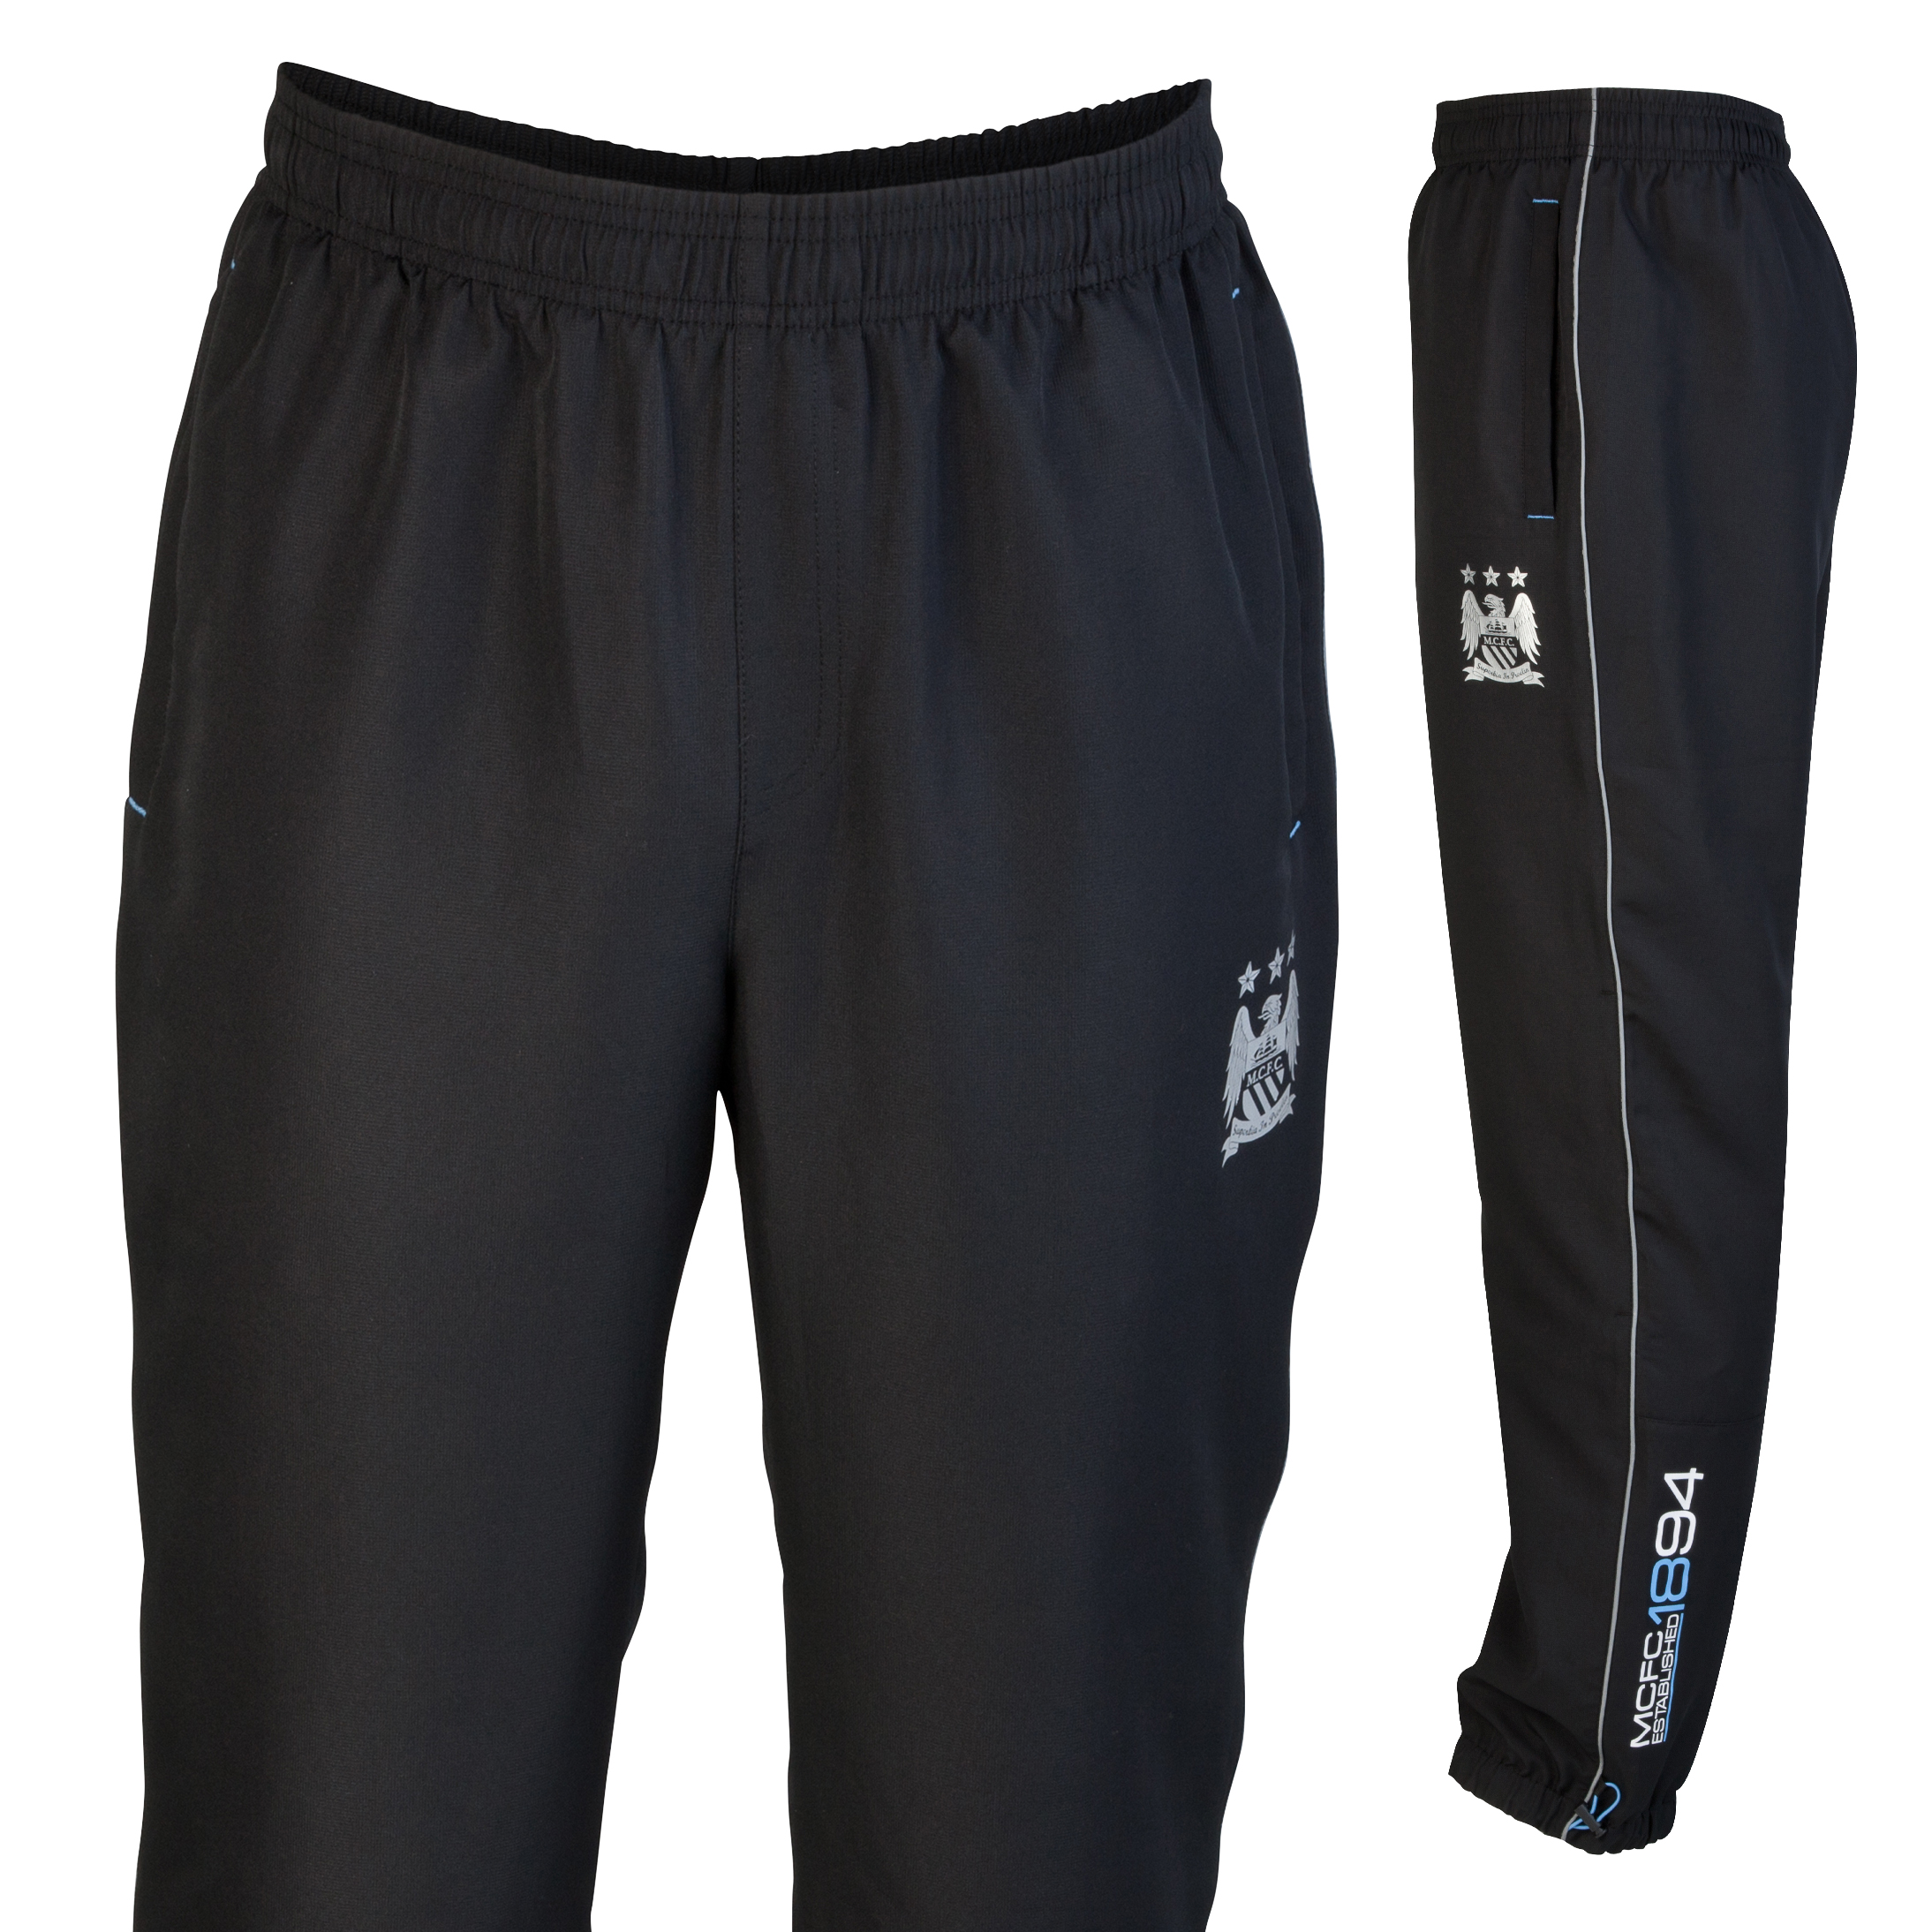 Manchester City Performance  Riptide Pant - Black - Older Boys